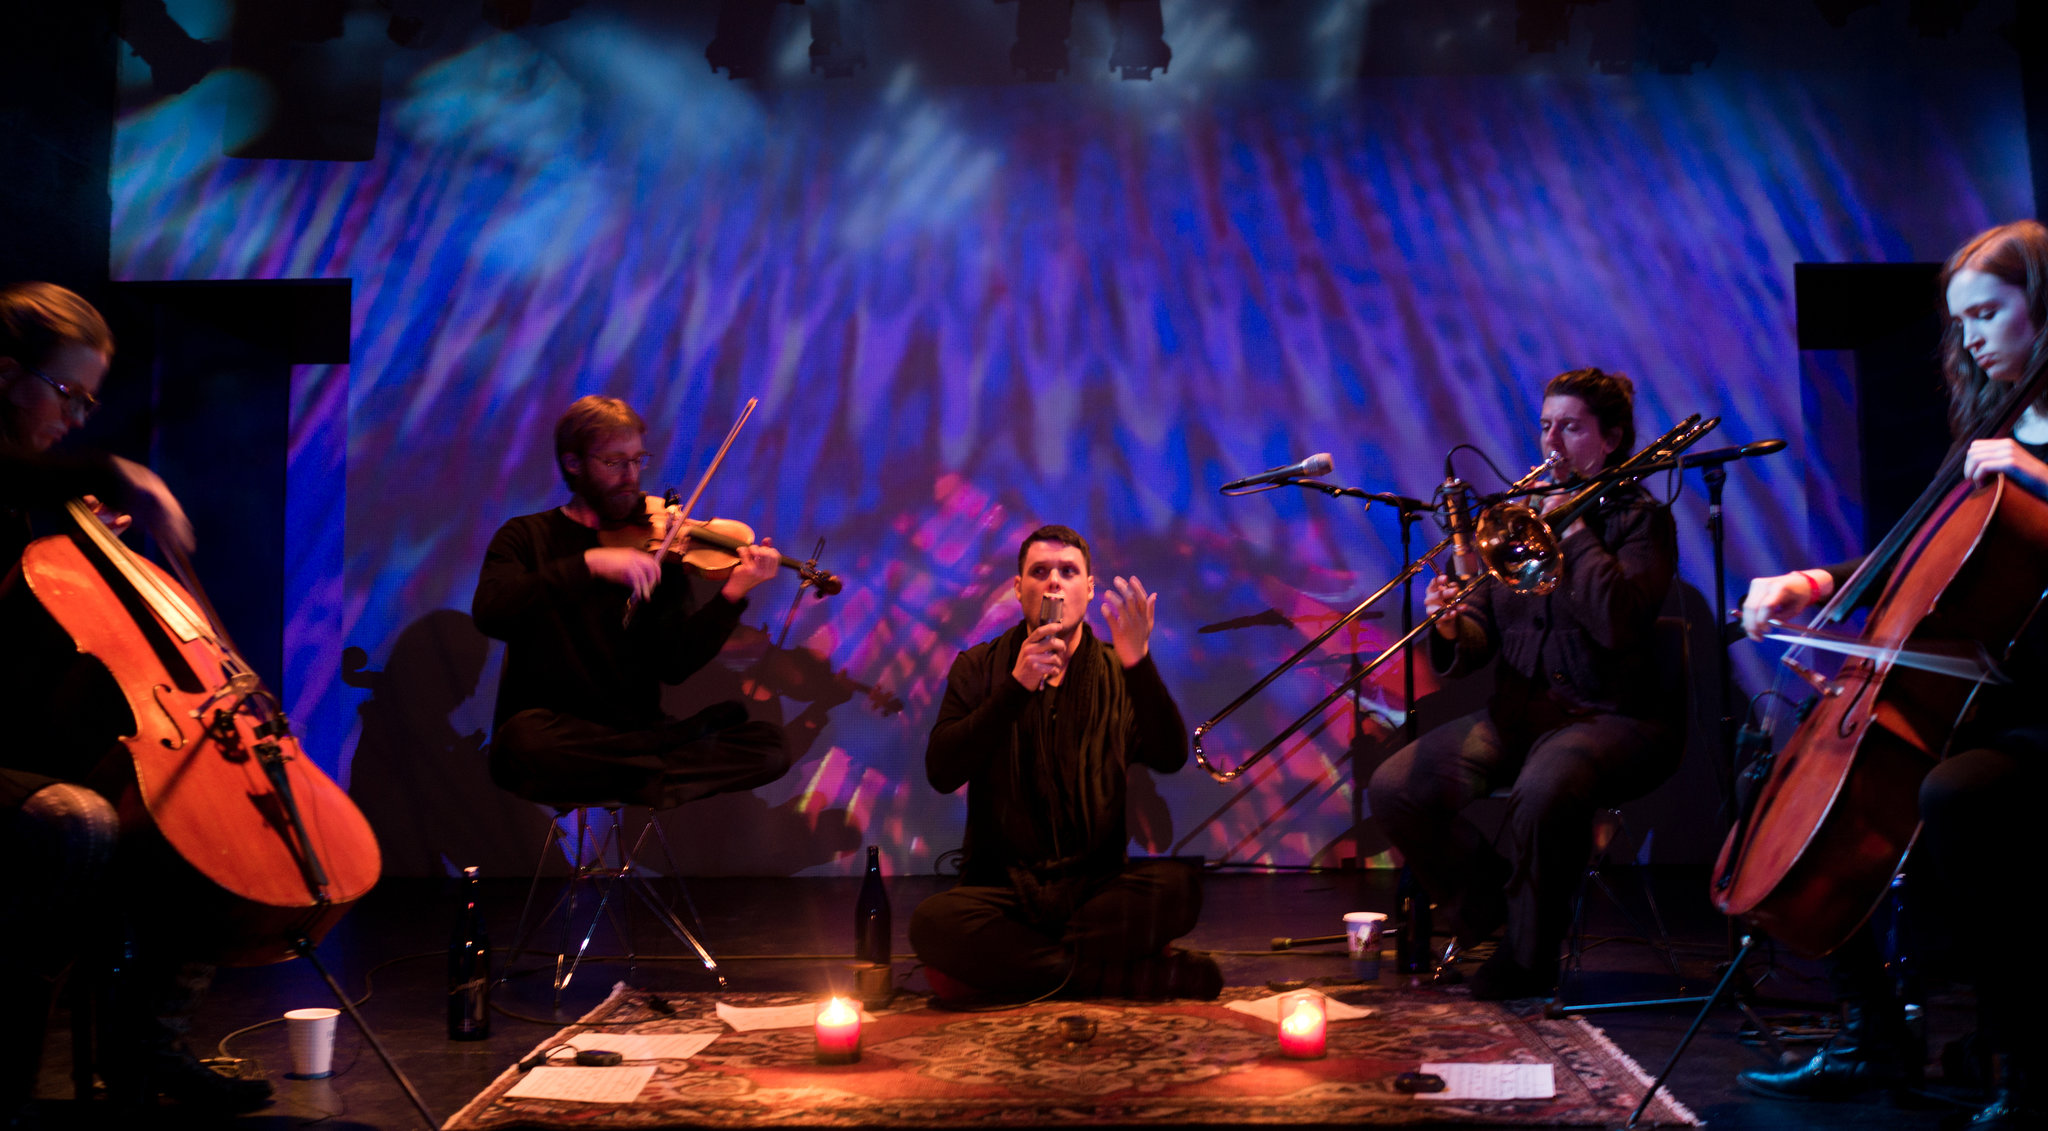 Randy Gibson, center, and his ensemble performing ″Apparitions of the Four Pillars in The Midwinter Starfield Under The Astral 789 Duet″ at Wild Project